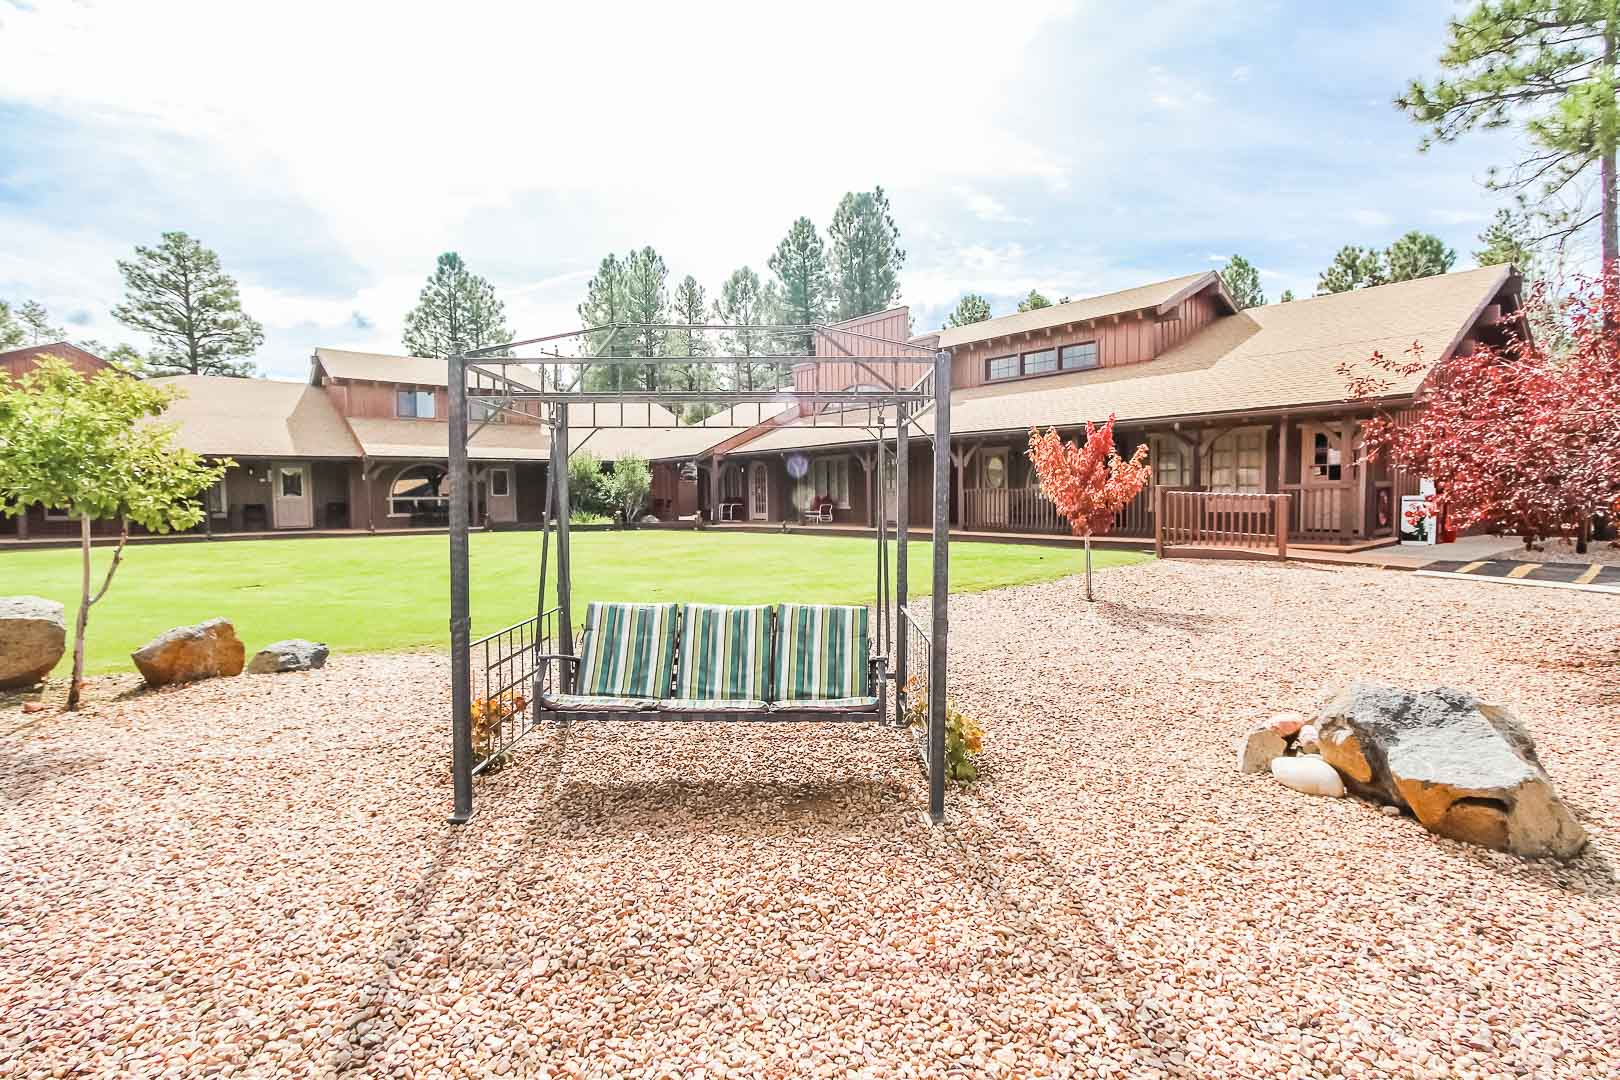 A peaceful view of VRI's Roundhouse Resort in Pinetop, Arizona.